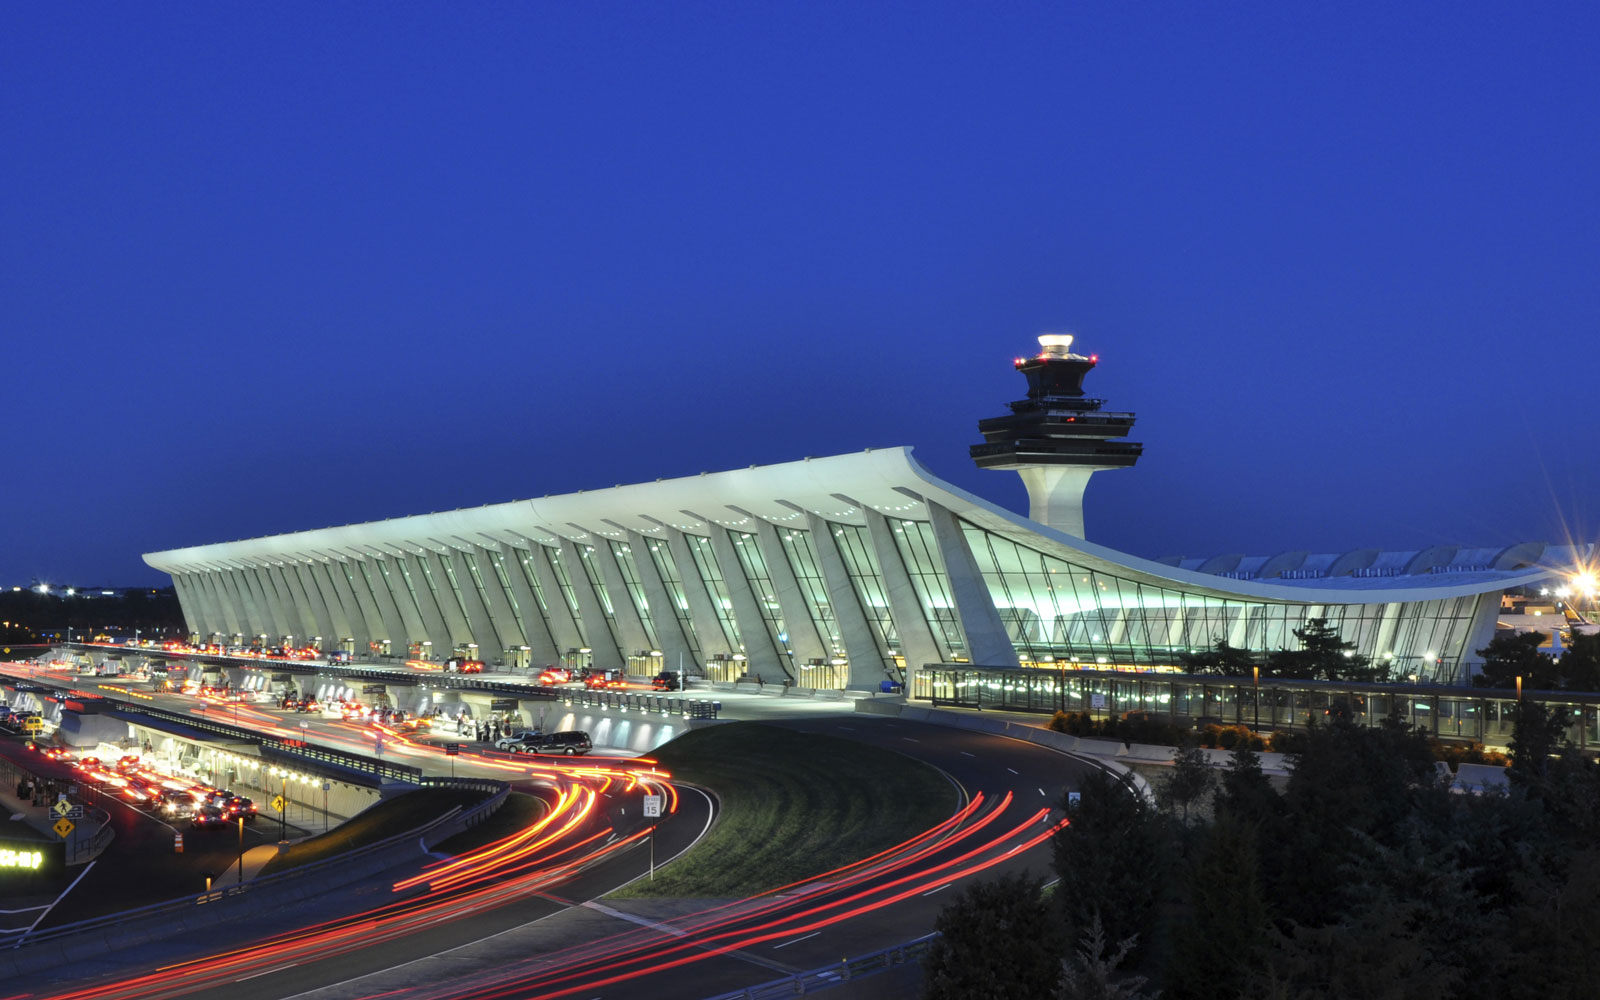 America's best and worst airports: Washington Dulles (IAD)